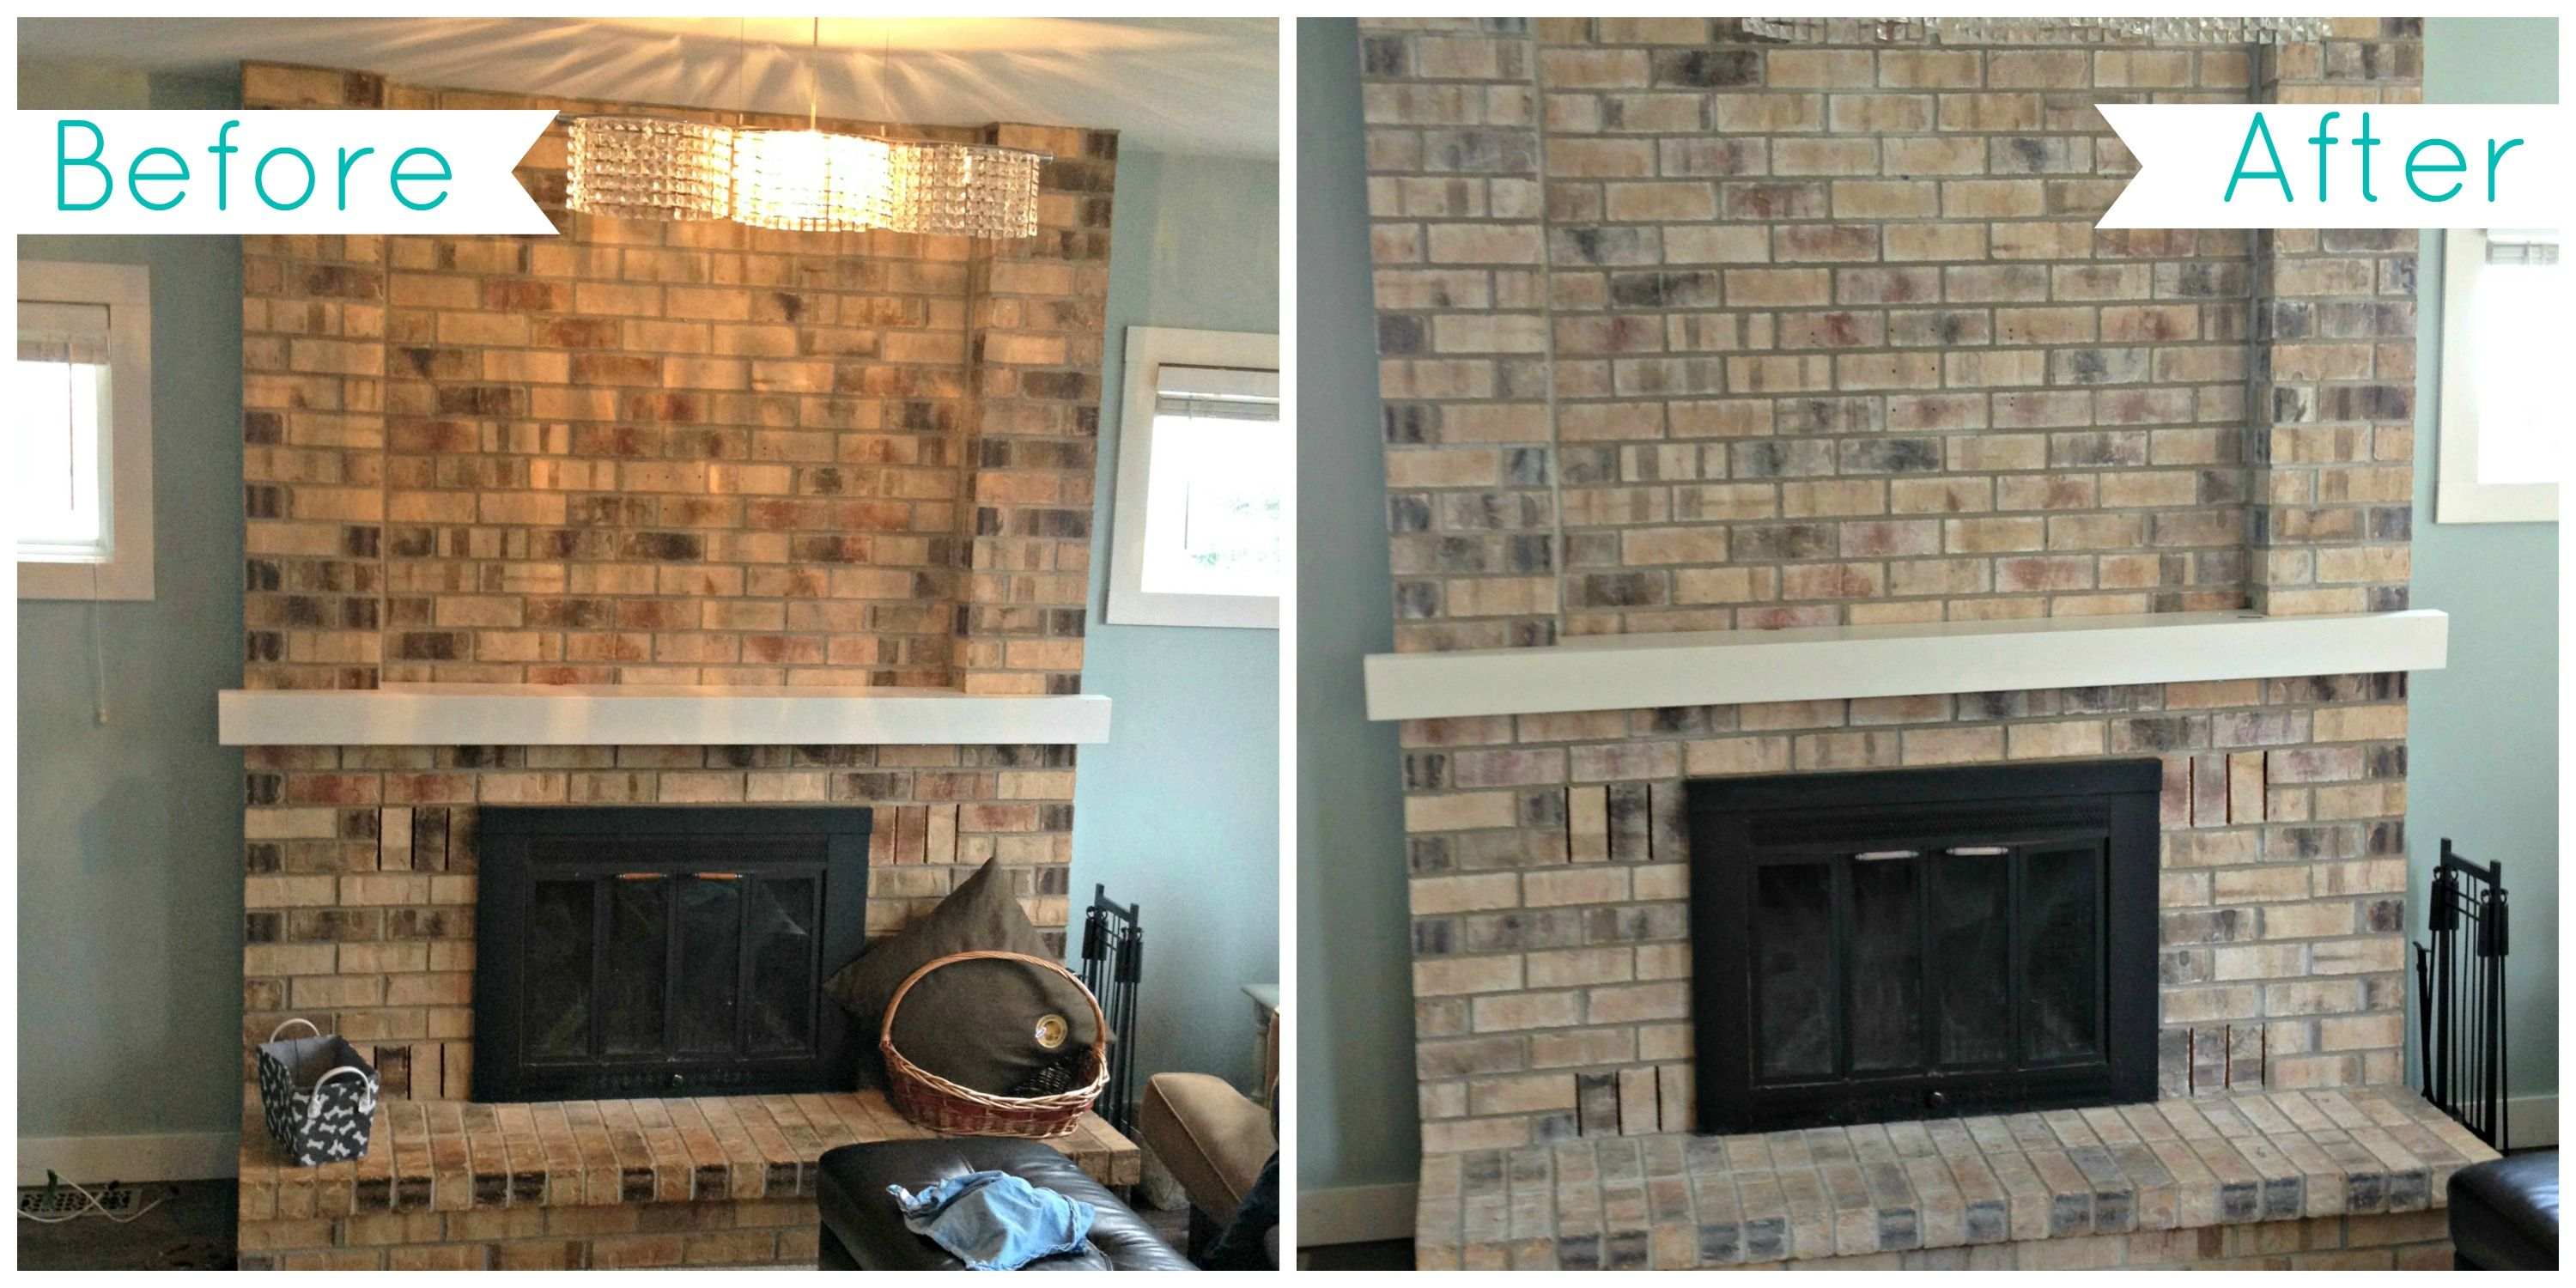 Painted Brick Fireplace Before And After Fireplace Design Ideas Fireplace Remodel Brick Fireplace Makeover White Wash Brick Fireplace